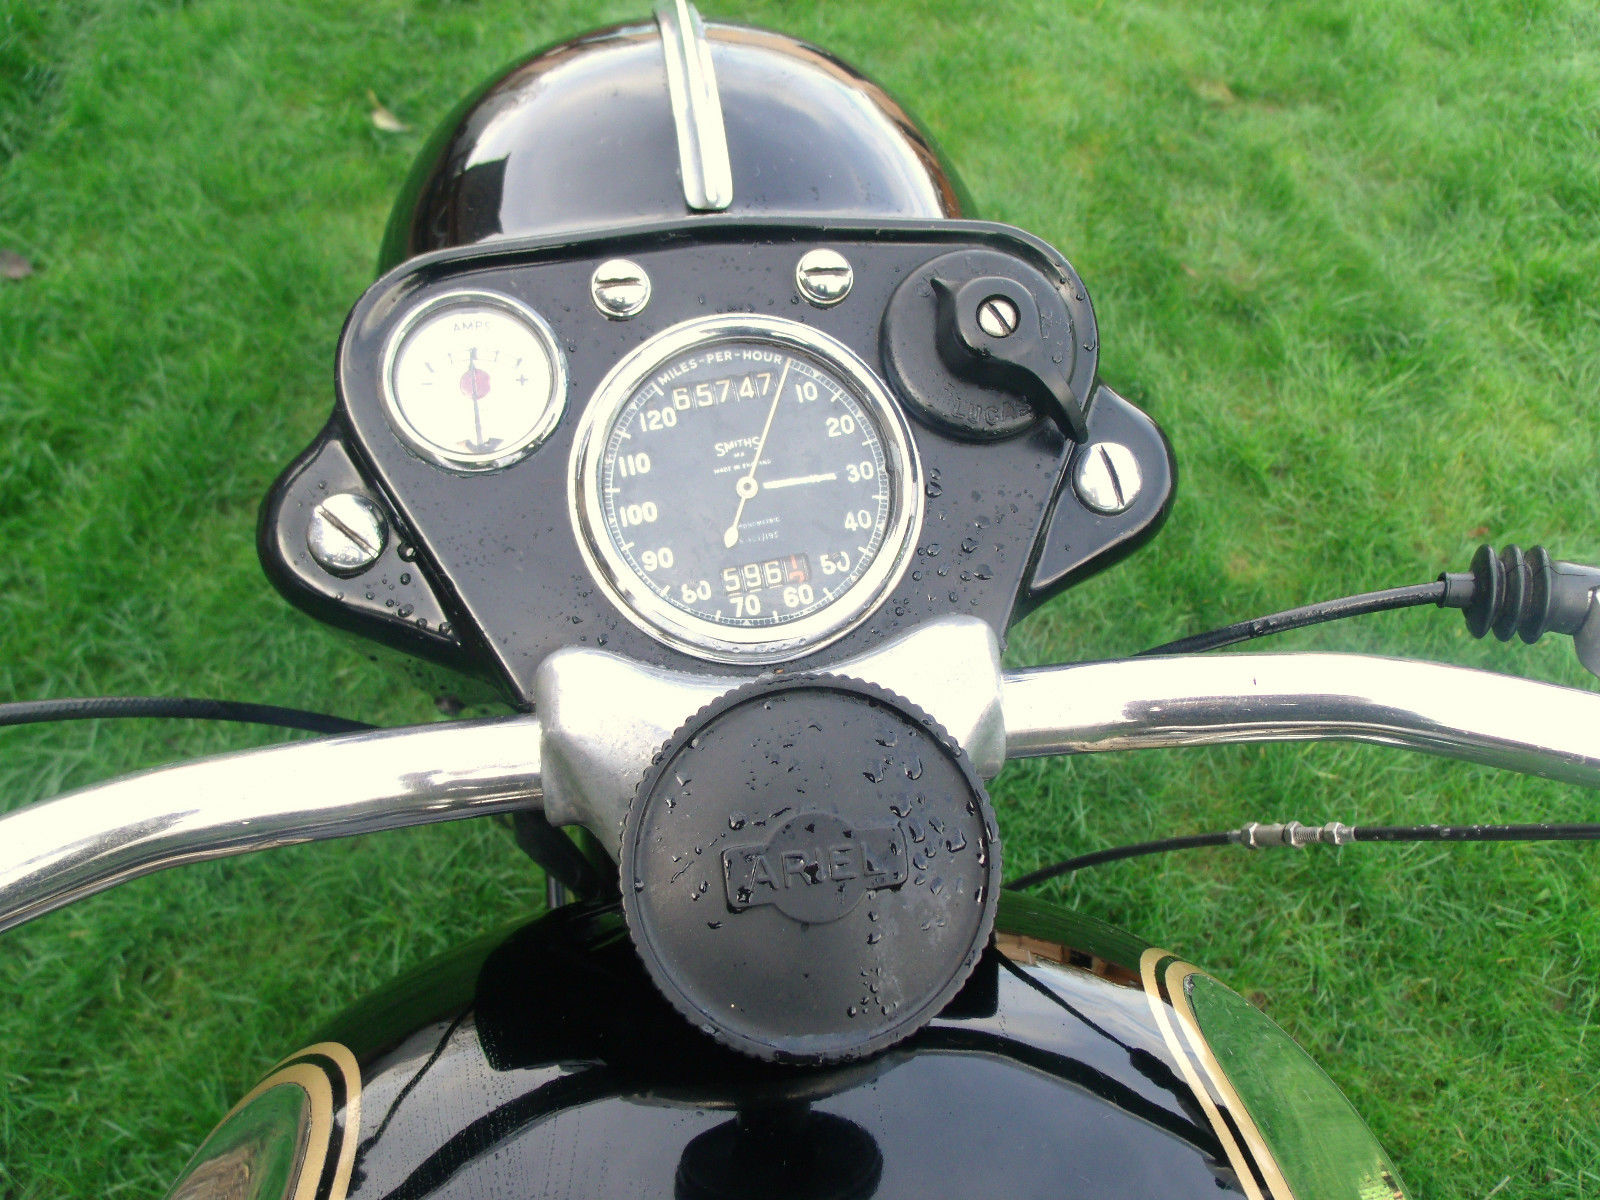 Ariel Square 4 - 1955 - Steering Damper, Ignition Switch, Clock, Speedo and Headlight.